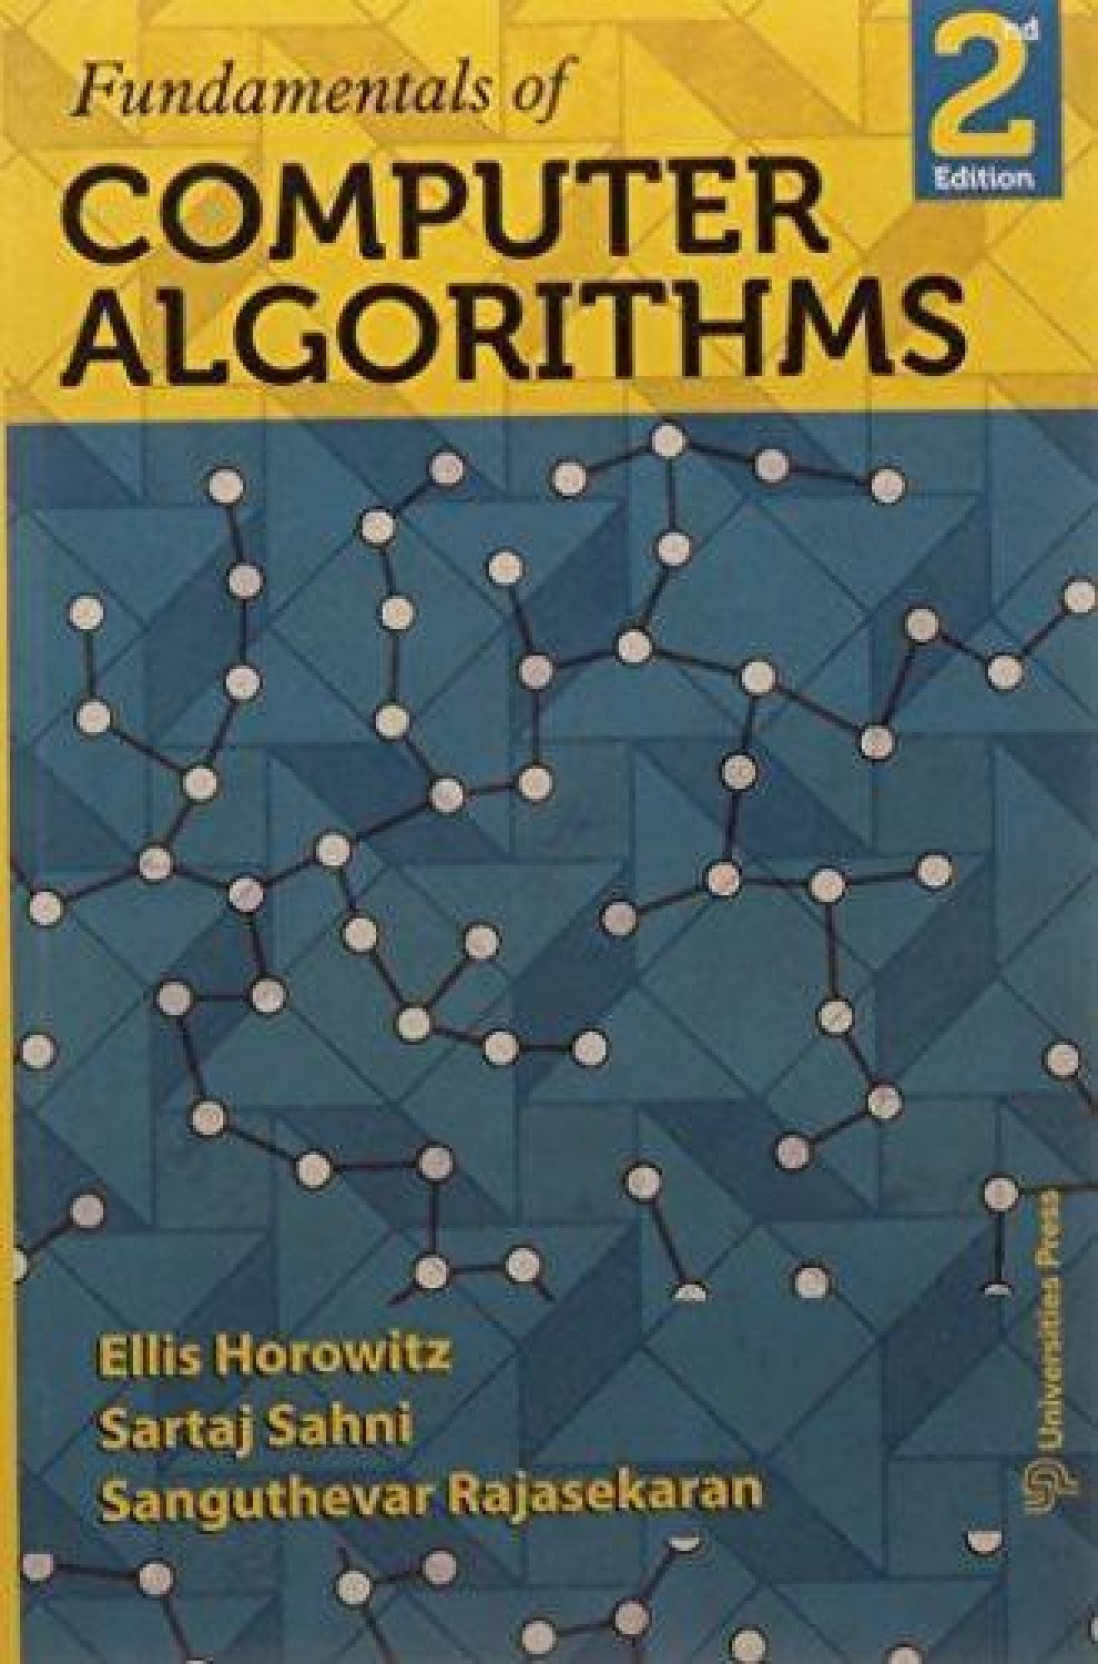 Fundamentals Of Computer Algorithms 2nd Edition. ADD TO CART